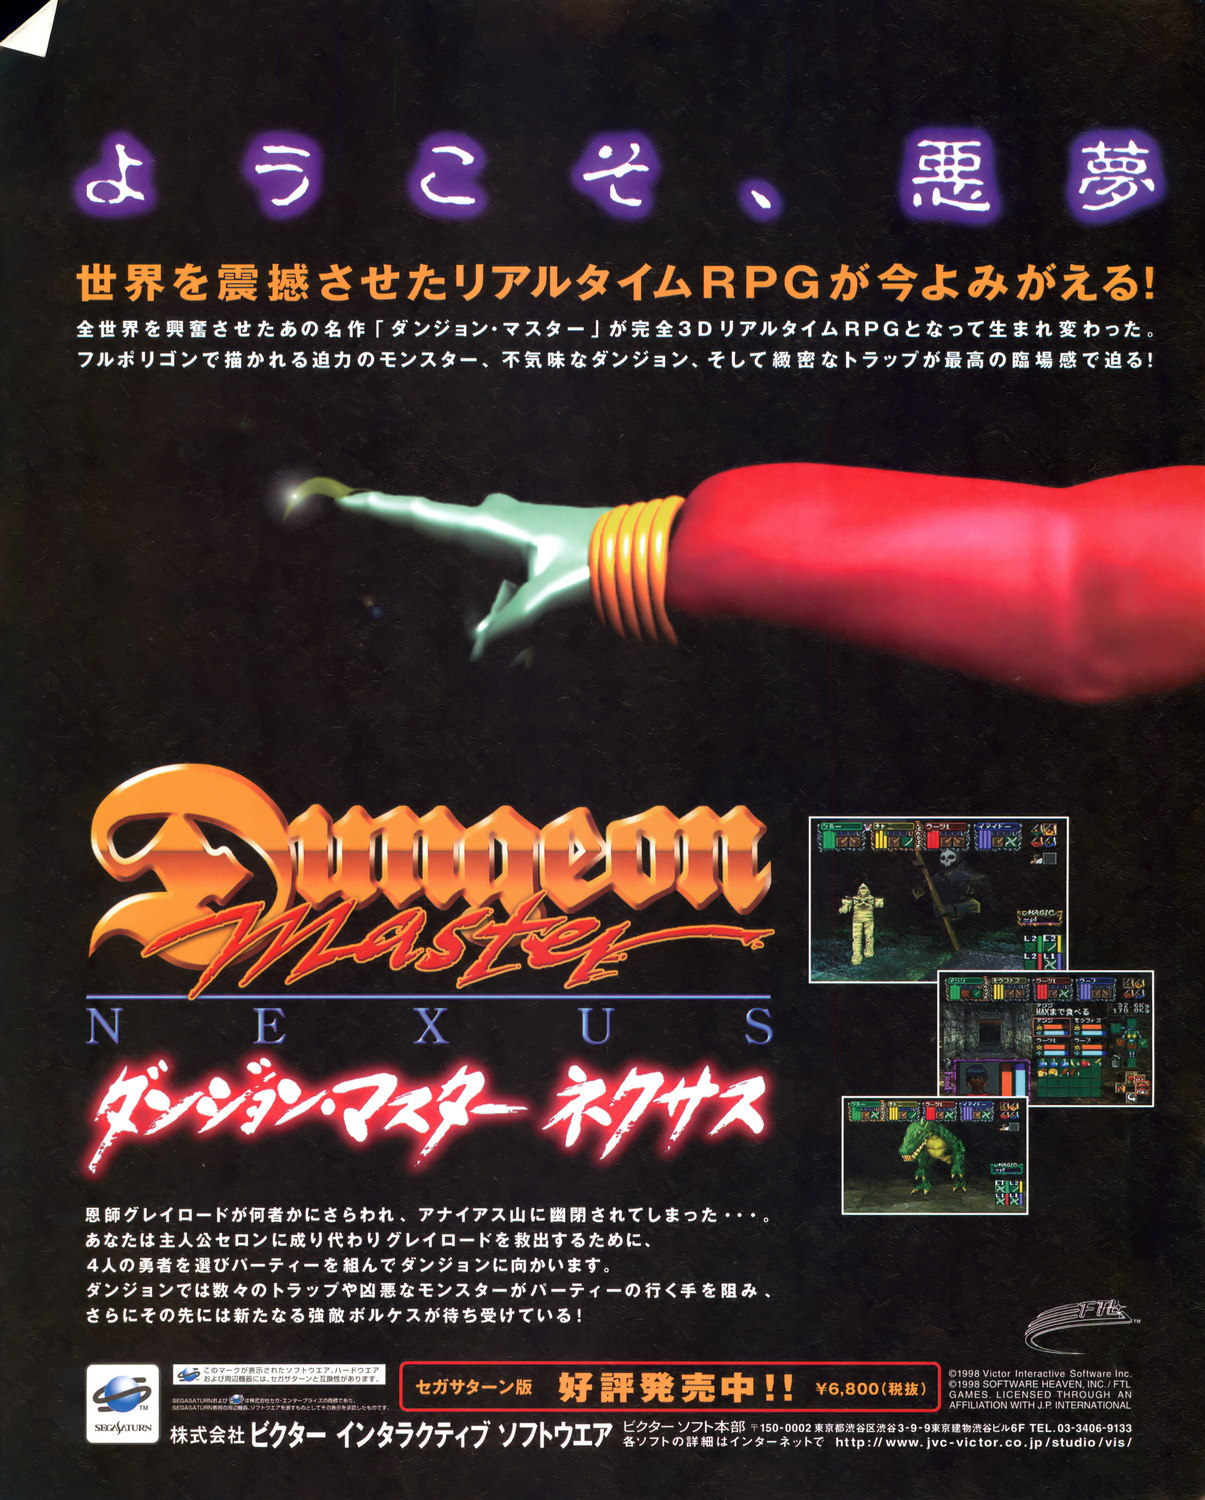 Dungeon Master Nexus Advertisement published in Japanese magazine 'Sega Saturn Magazine', Vol 12 24 April 1998, Page 2